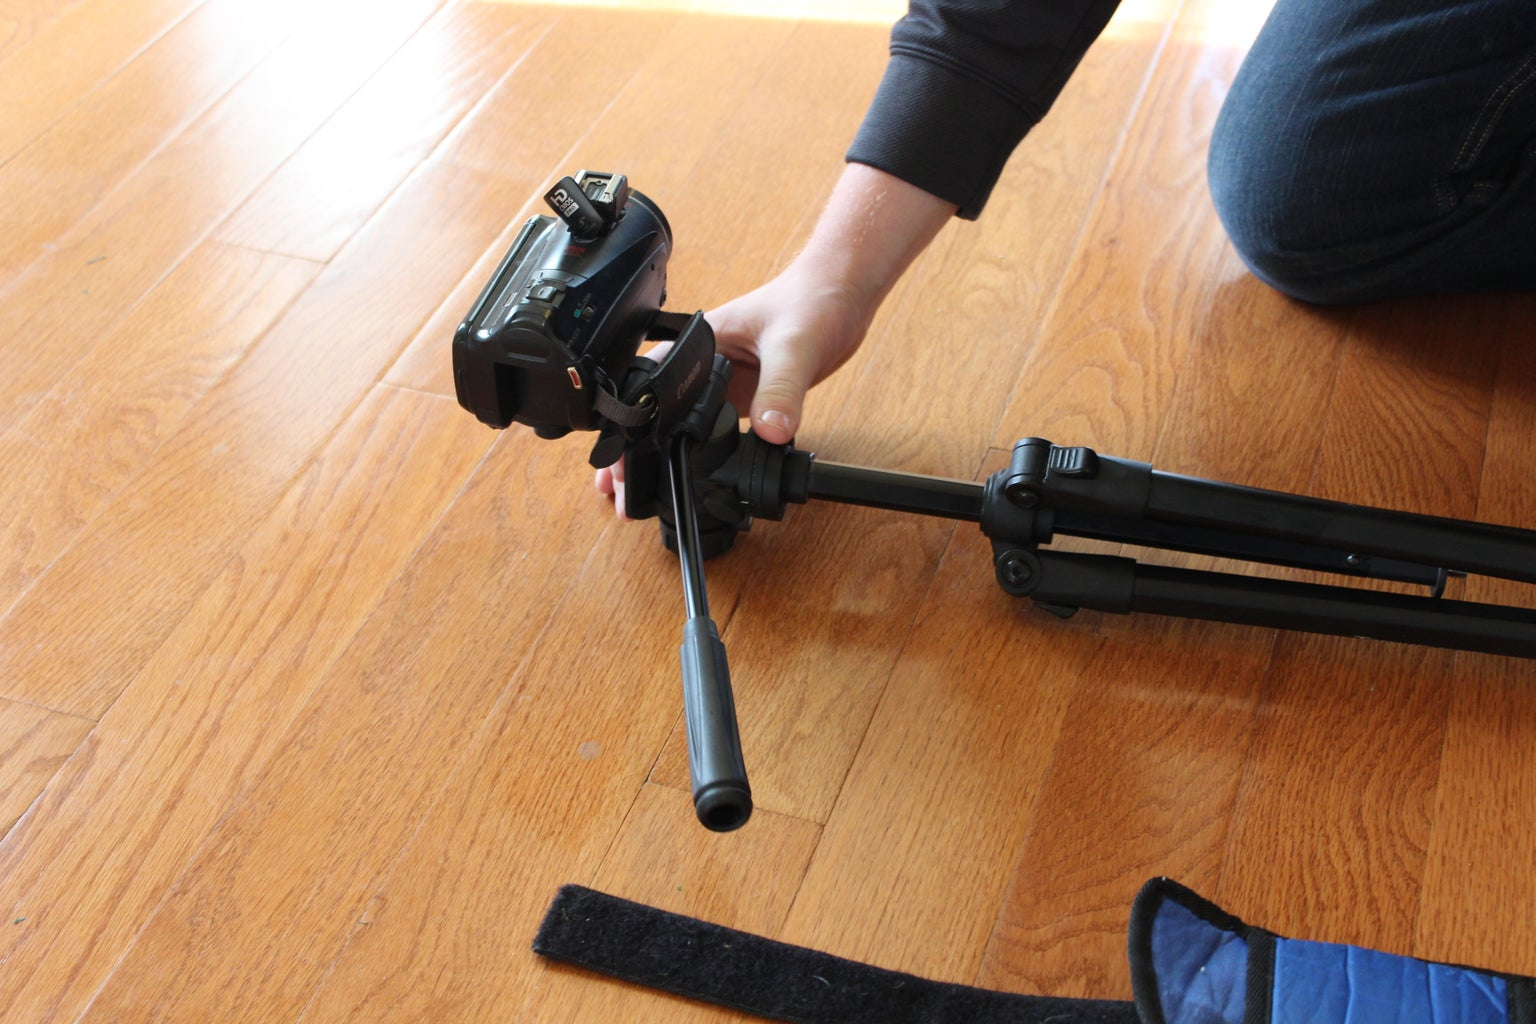 Rotate Head of Tripod So That It Is 90 Degrees With Respect to the Legs